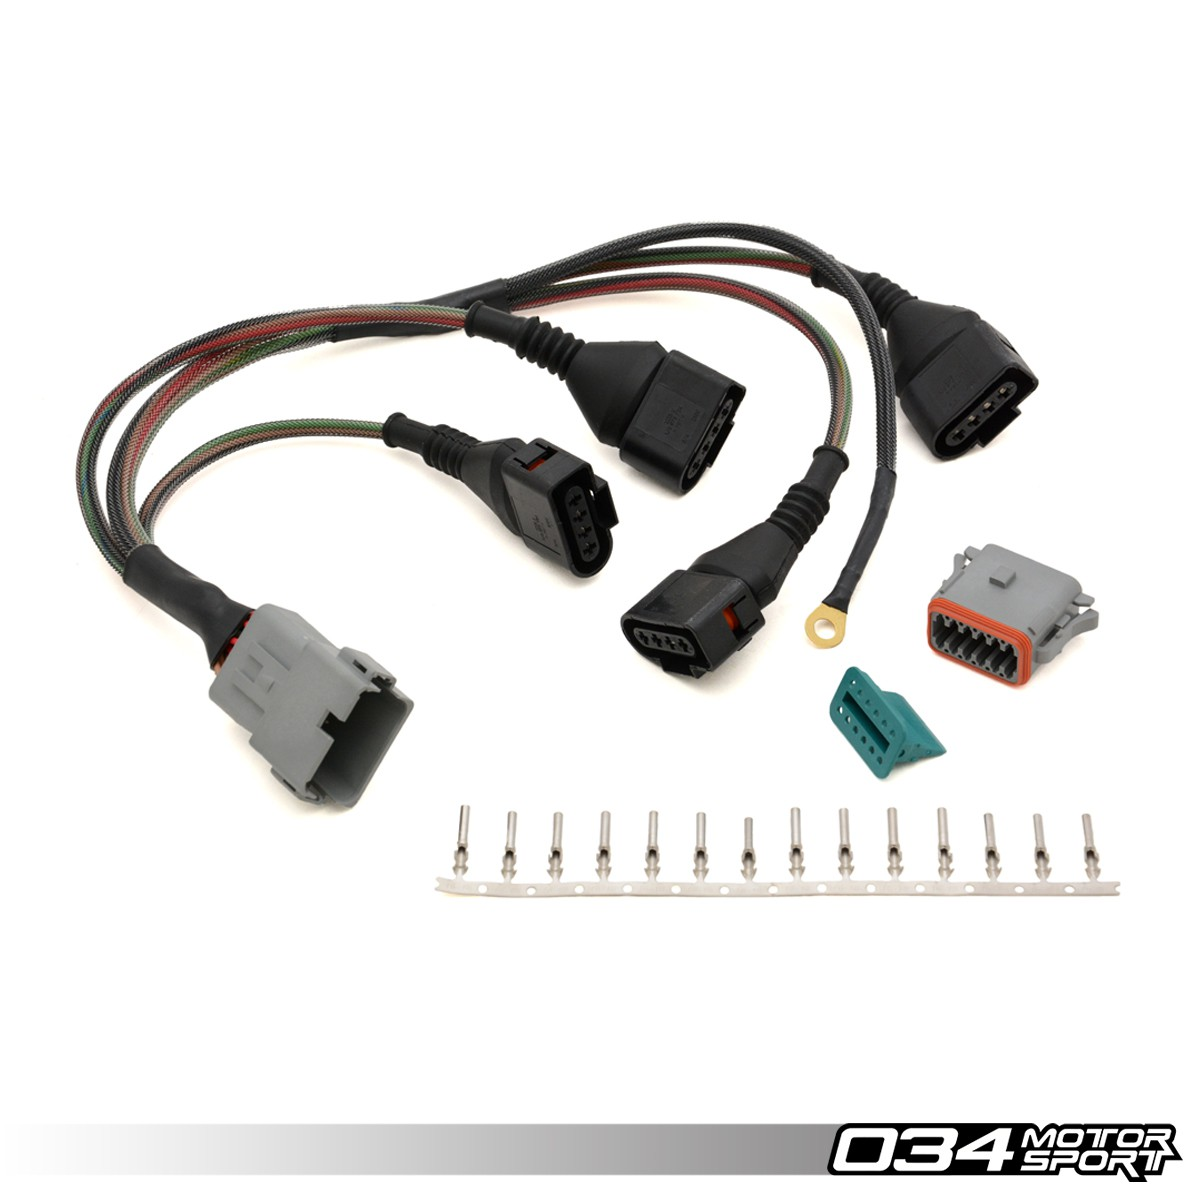 repair update harness audi volkswagen 18t with 4 wire coils 034motorsport 034 701 0004 2 repair update harness, audi volkswagen 1 8t with 4 wire coils how to repair wire harness connector at eliteediting.co